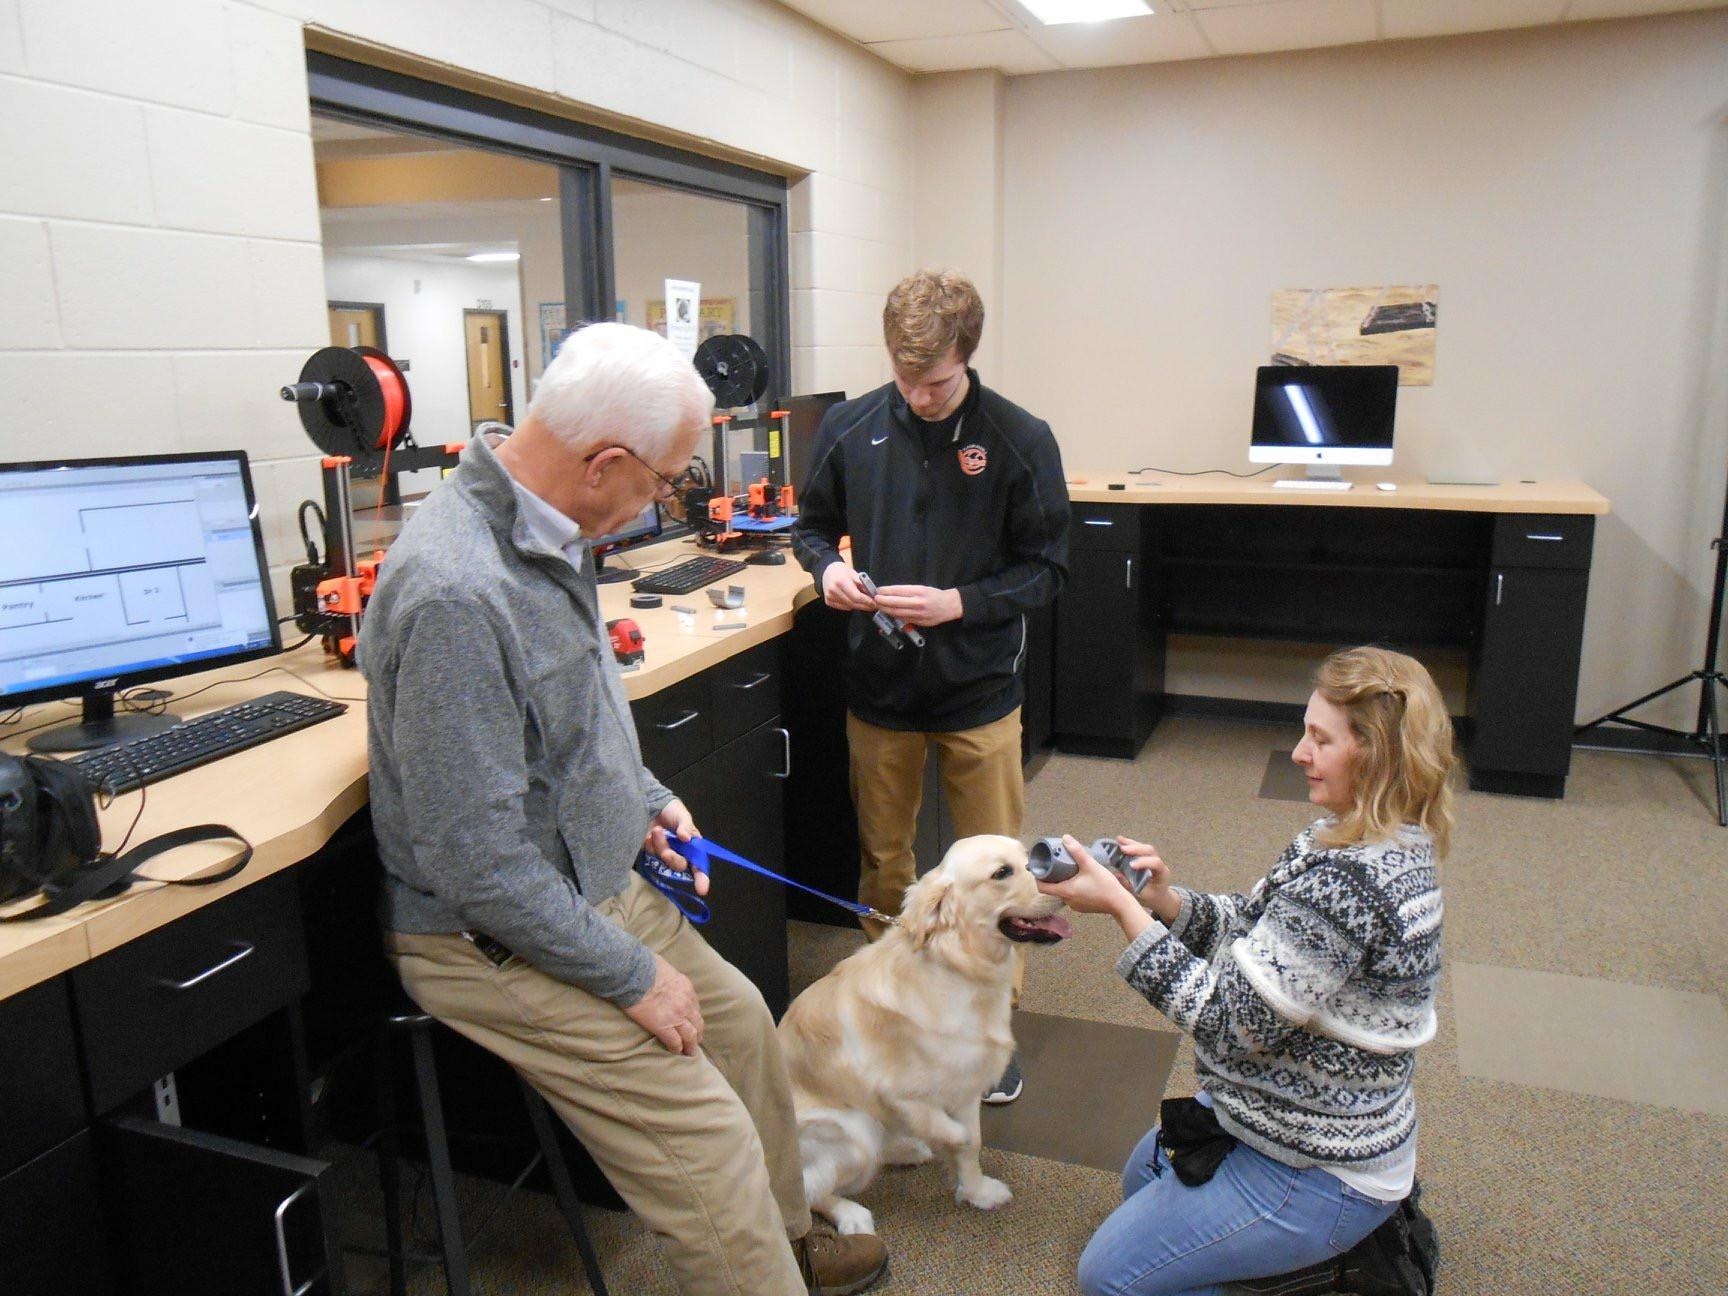 Grey the puppy is fitted with a prosthetic leg made by Kaukauna High School senior, Ben Brochtrup. (Photo courtesy of Kaukauna Area School District)